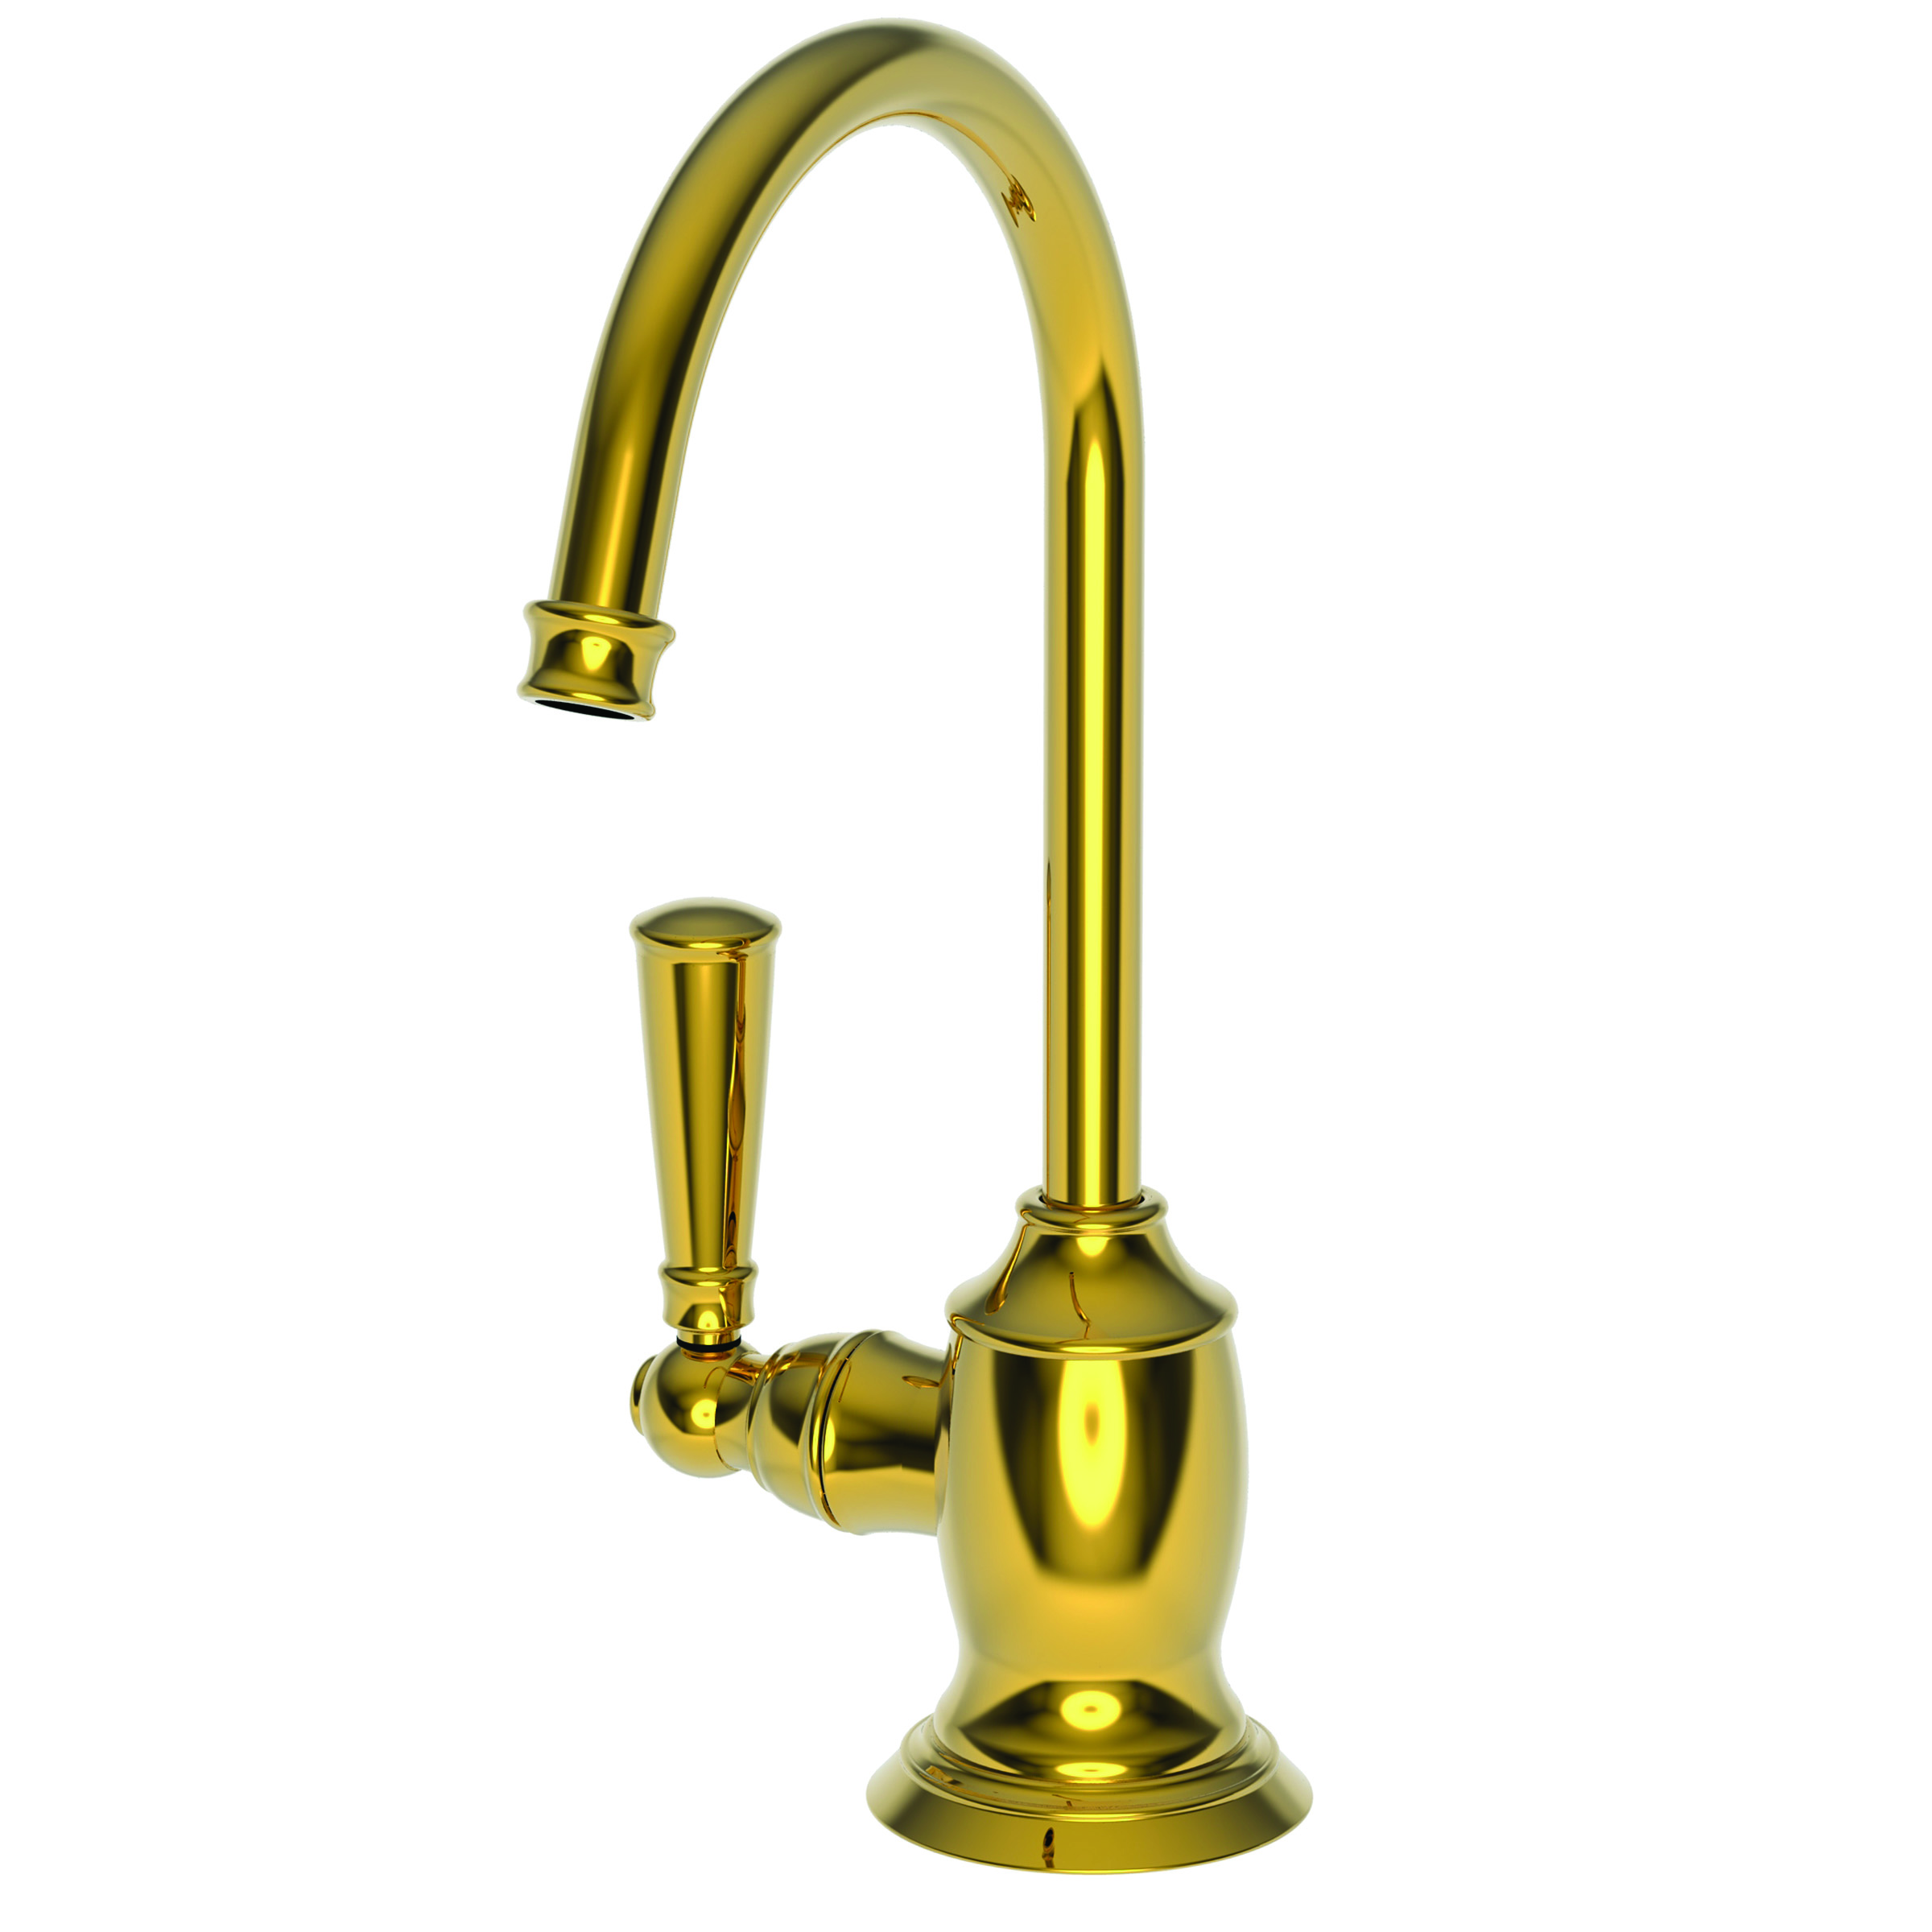 Newport Brass 2470 5613 Jacobean Hot Water Dispenser Newport Brass Faucets